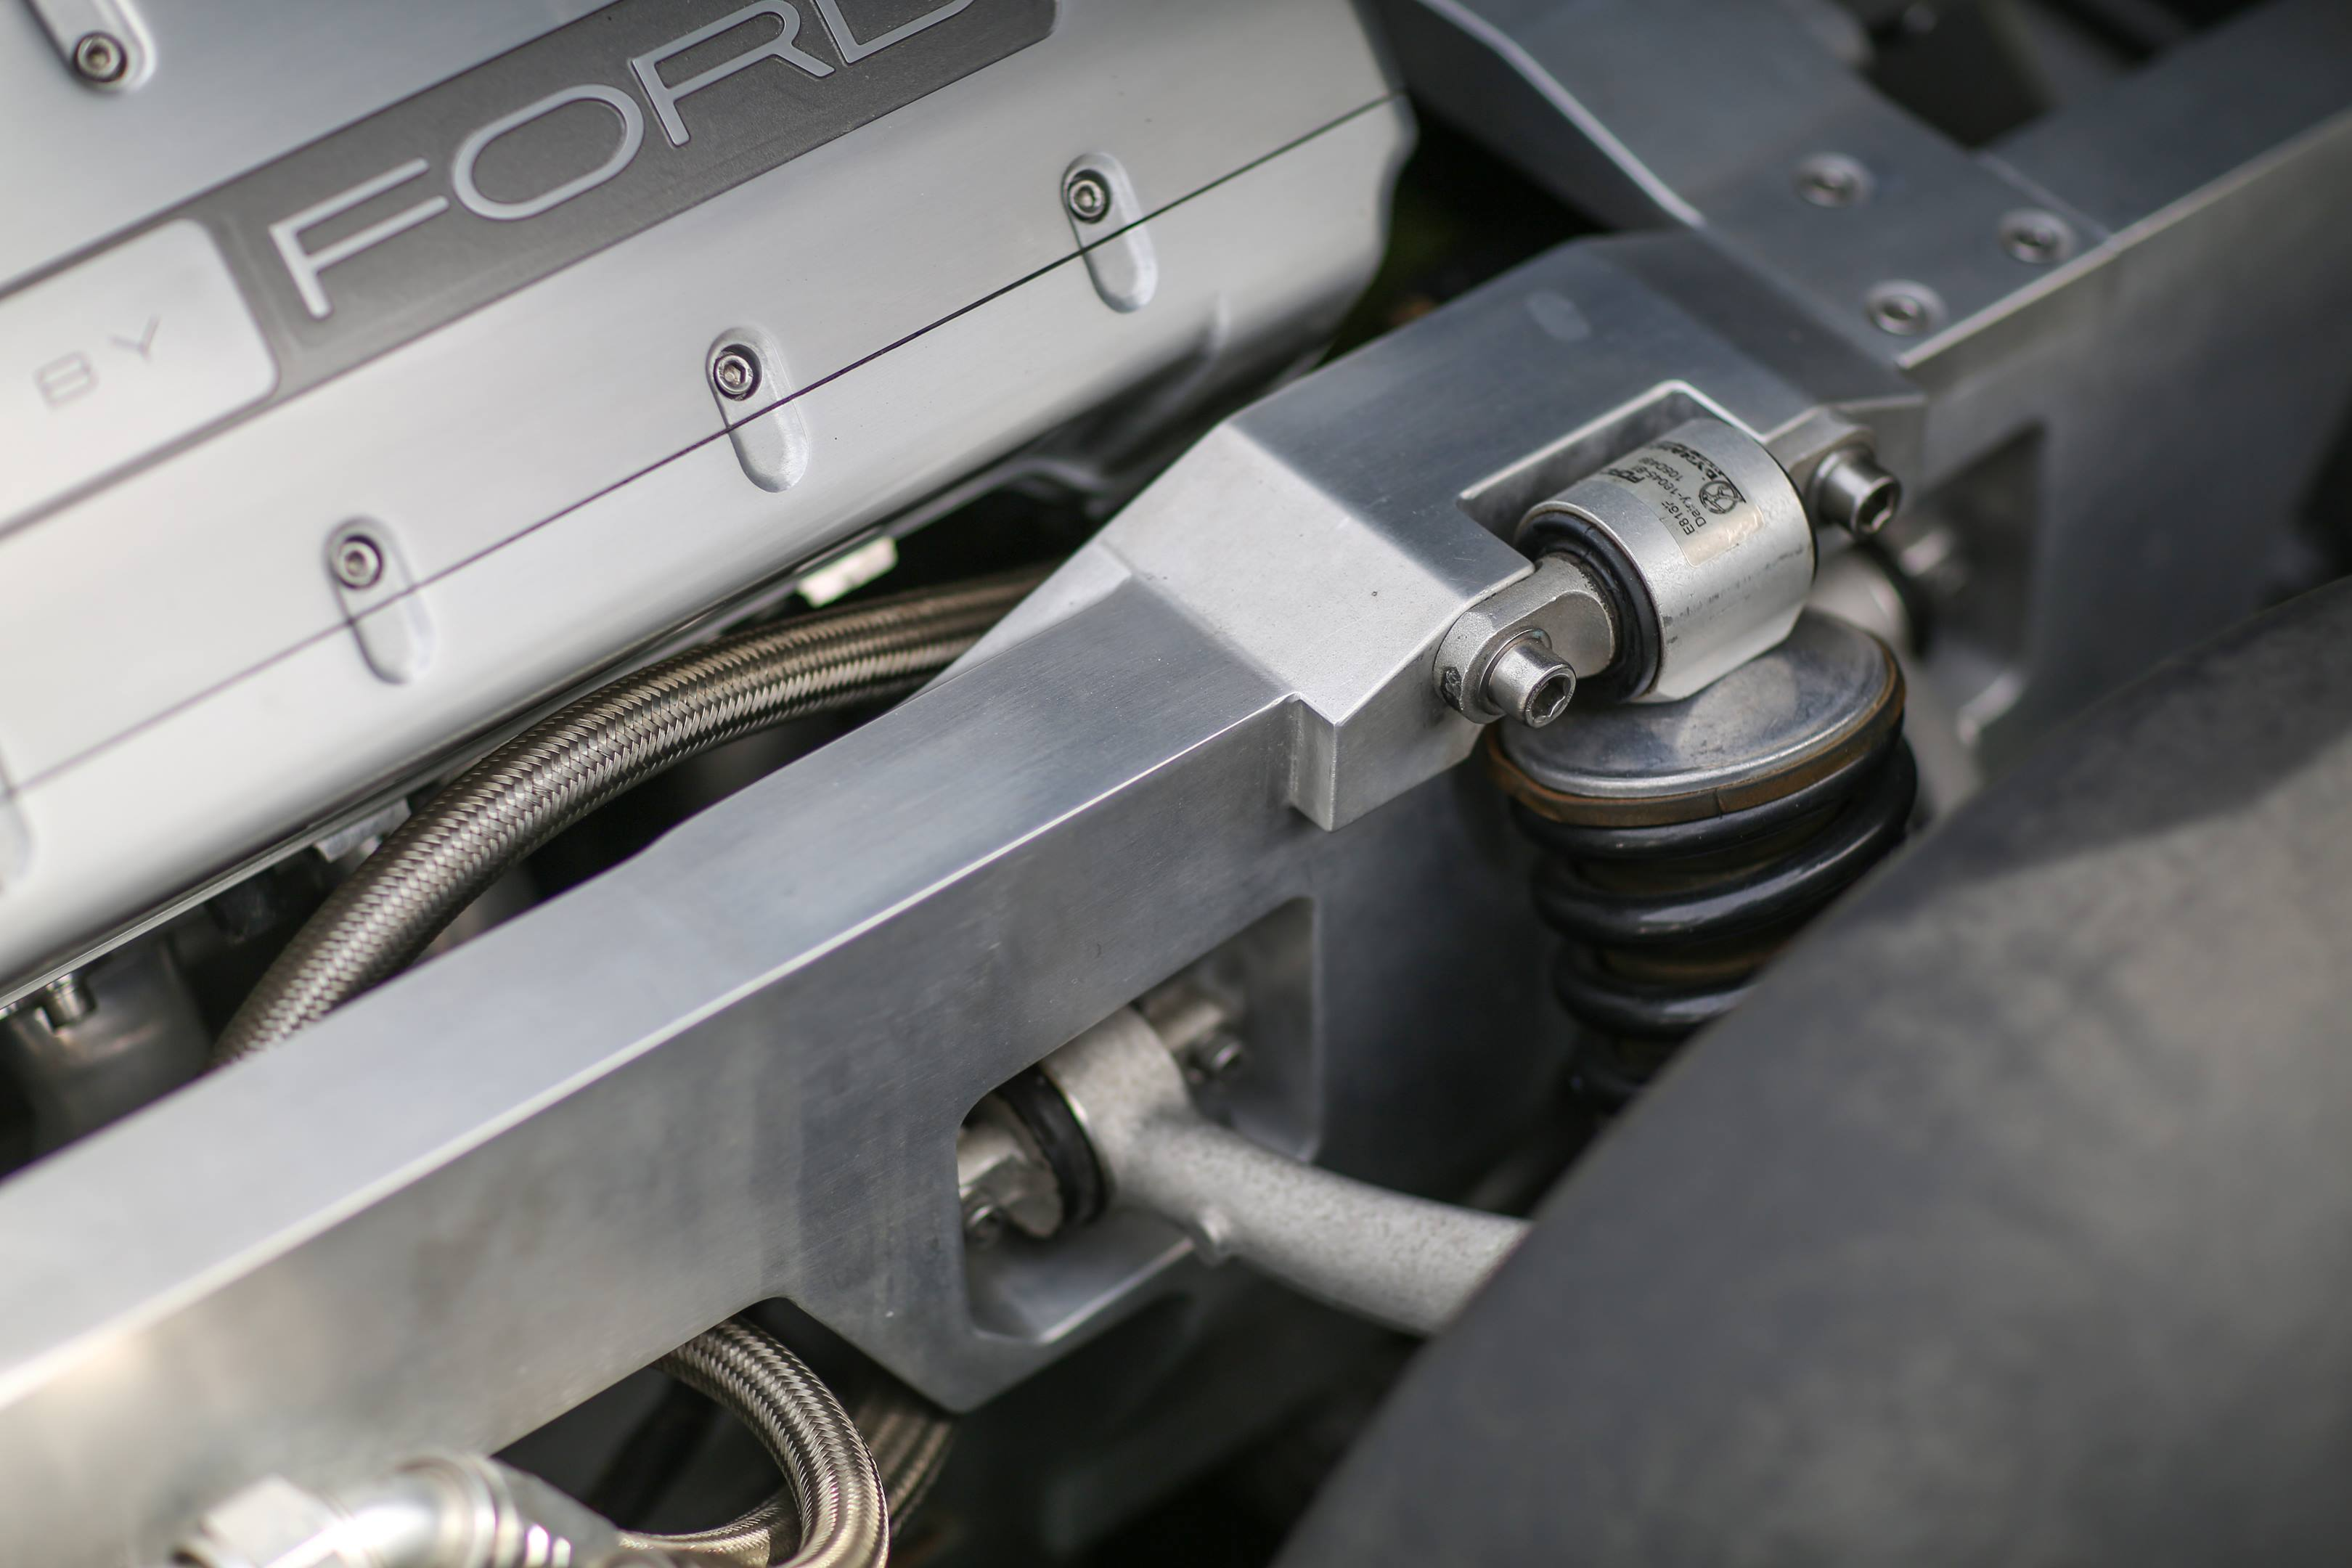 The car uses billet aluminum extensively, including these frame rail, the A-pillars, and the roll hoops behind the seats.